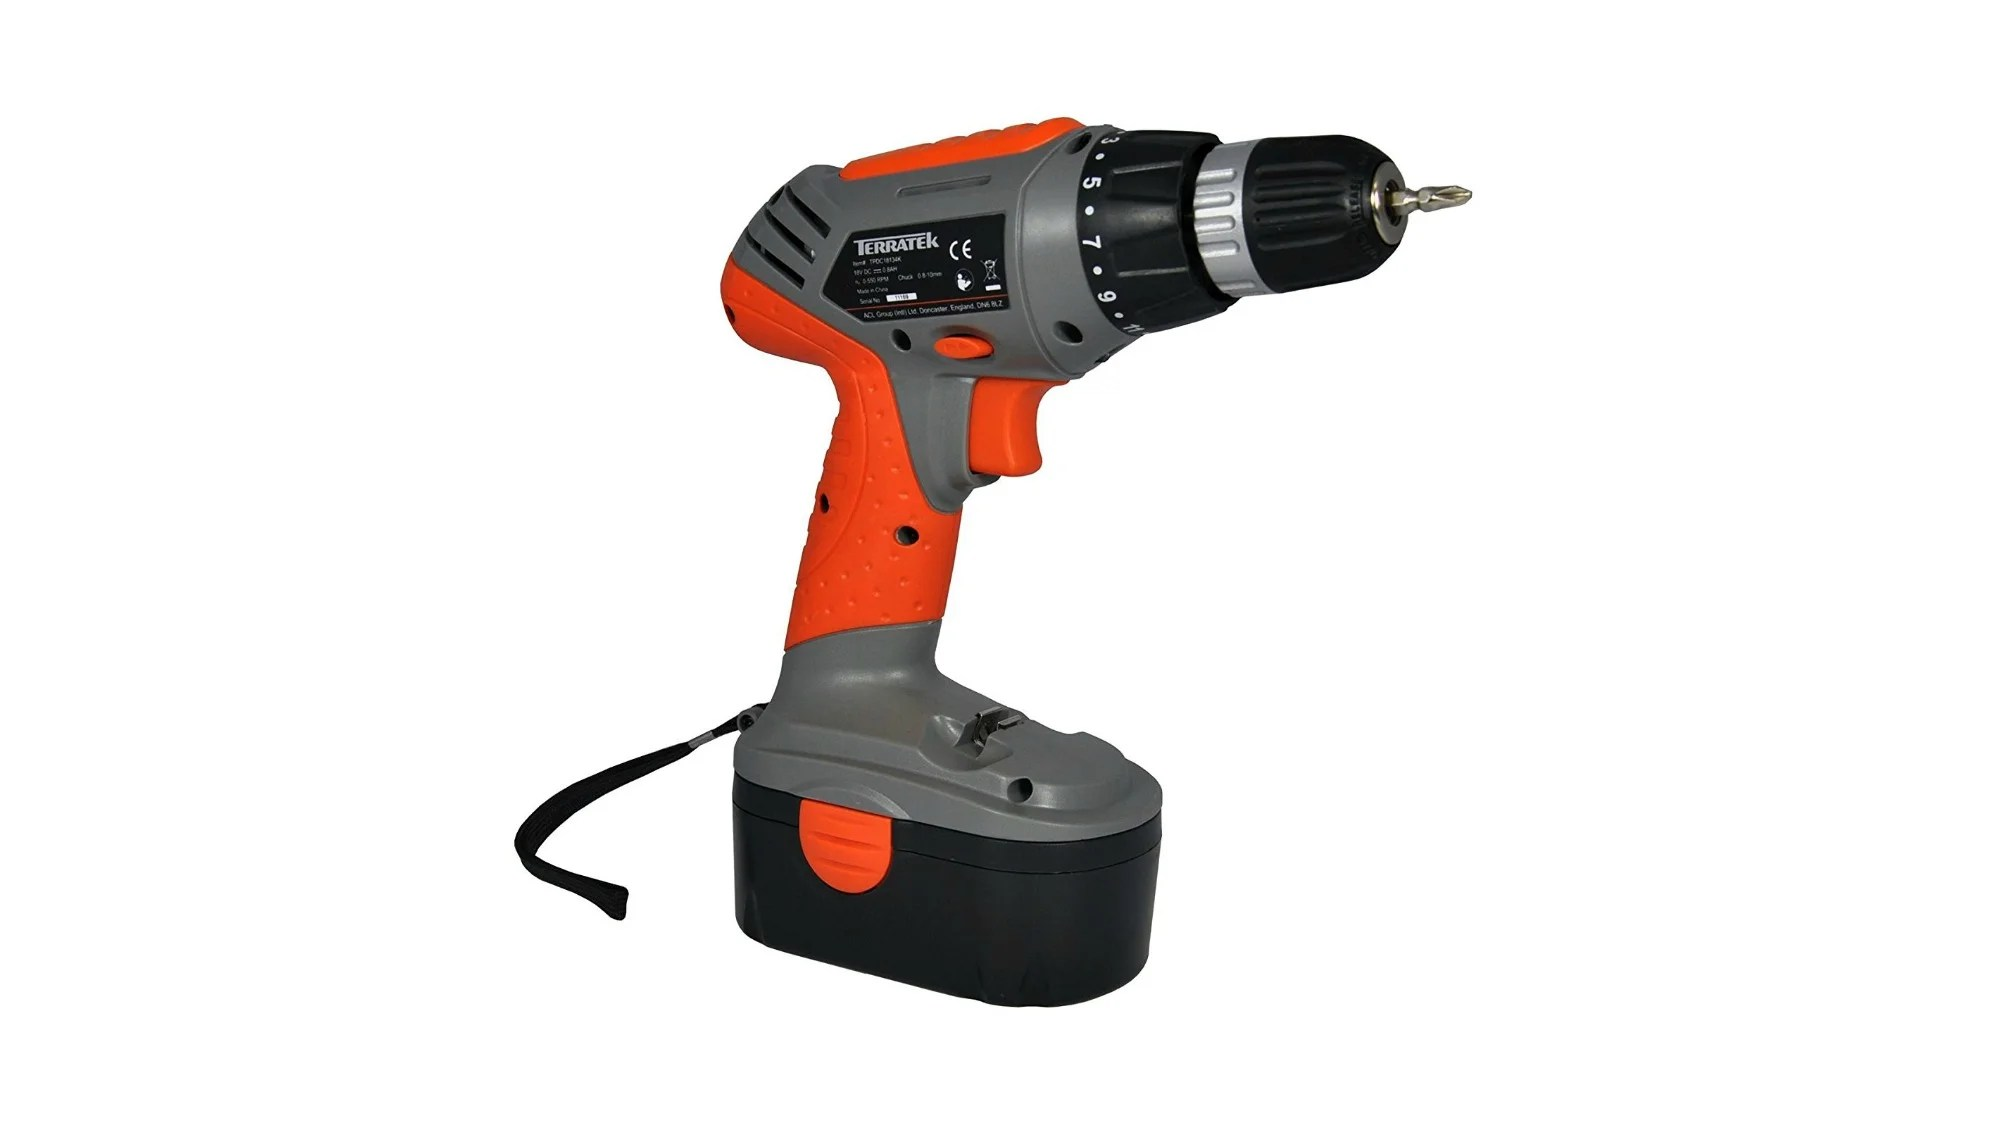 Gamma Accuboor Best Cordless Drills The Best Cordless Drill Drivers